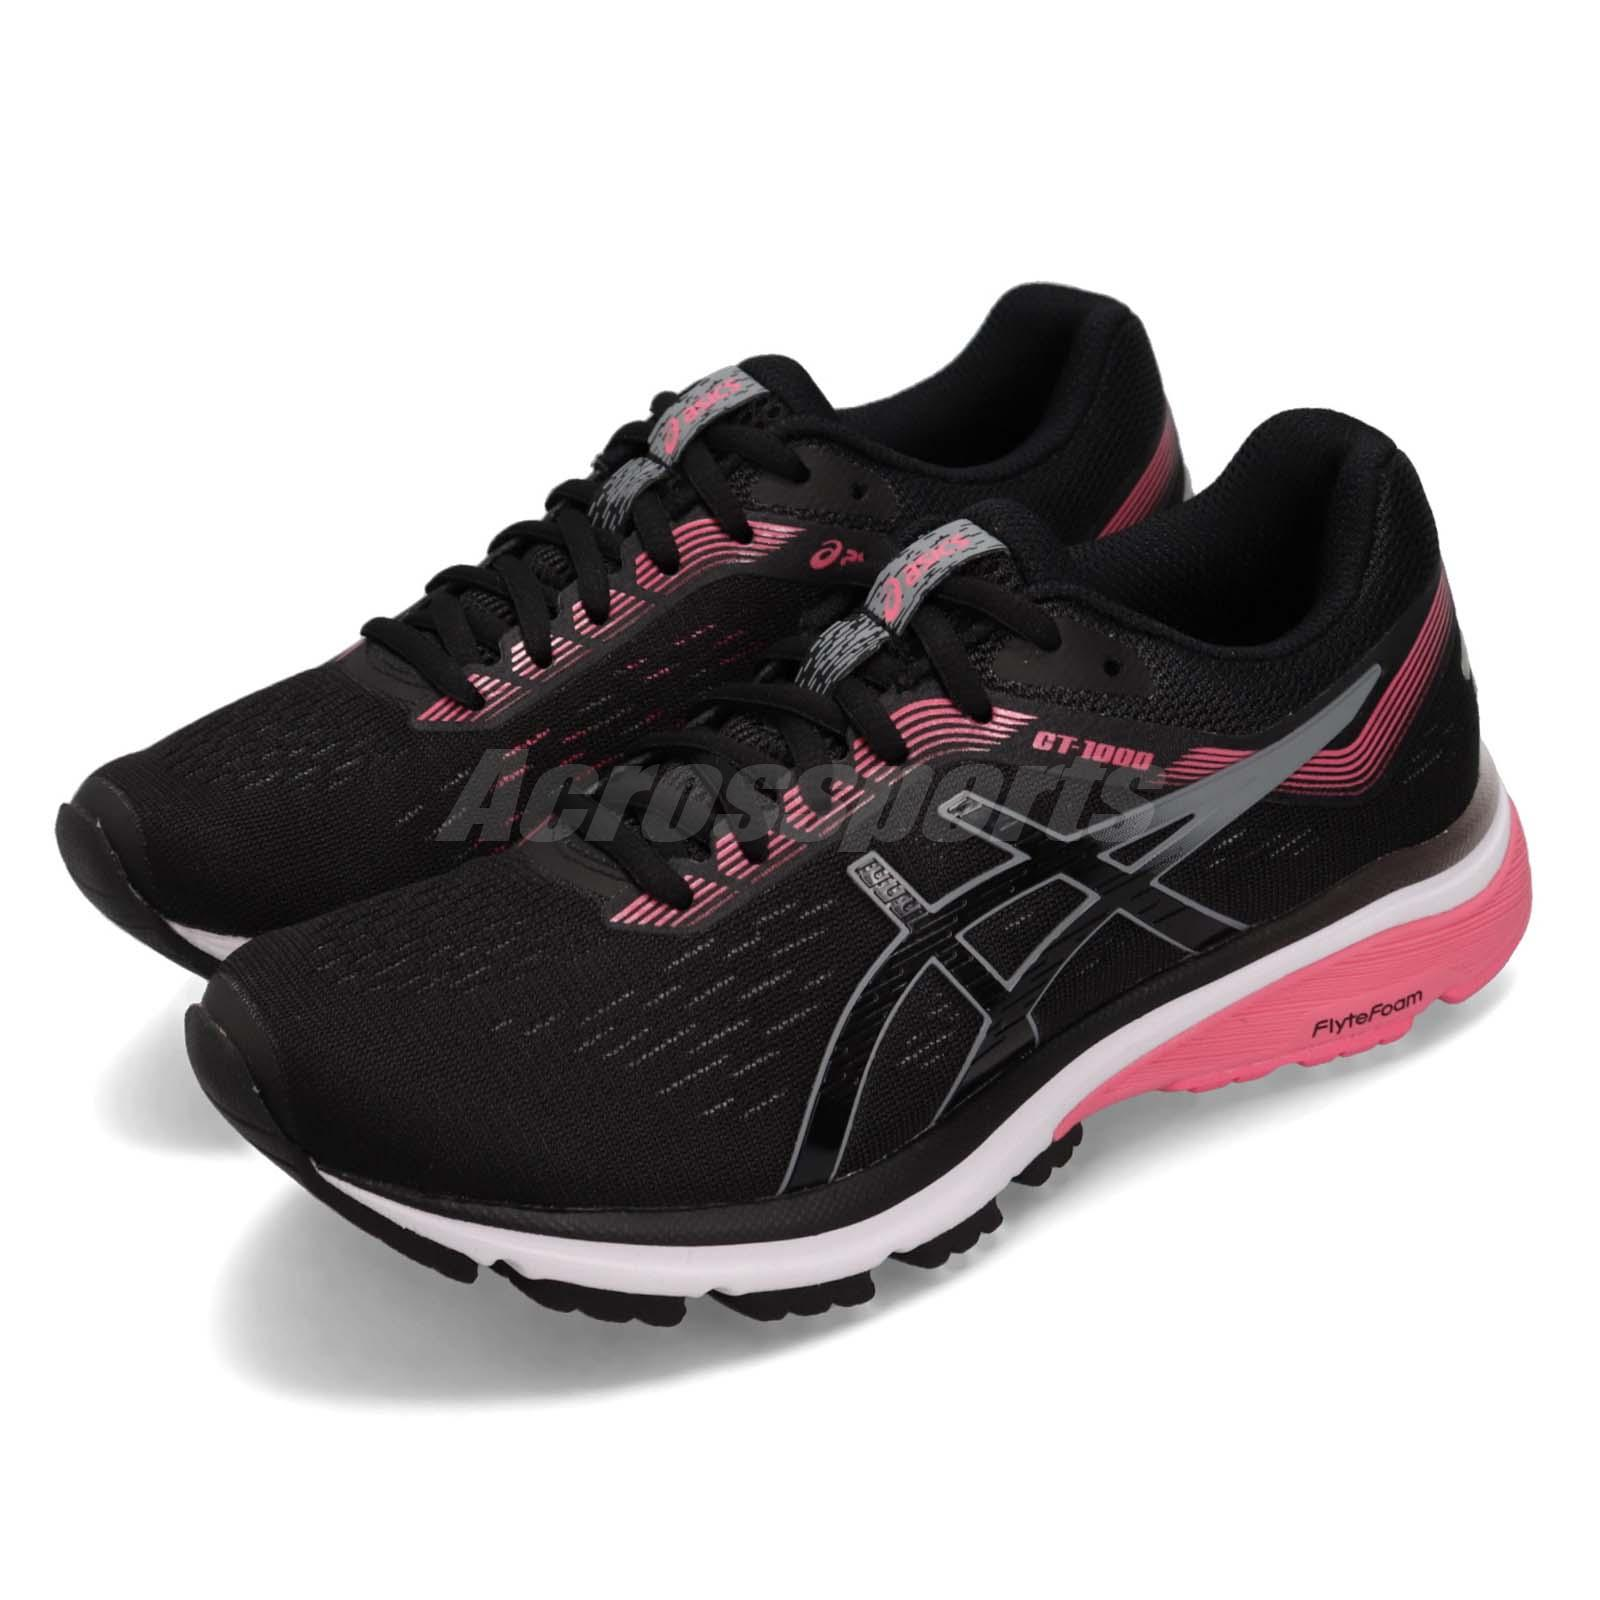 38100bf9 Details about Asics GT-1000 7 D Wide Black Grey Pink Women Running Shoes  Sneakers 1012A029-004